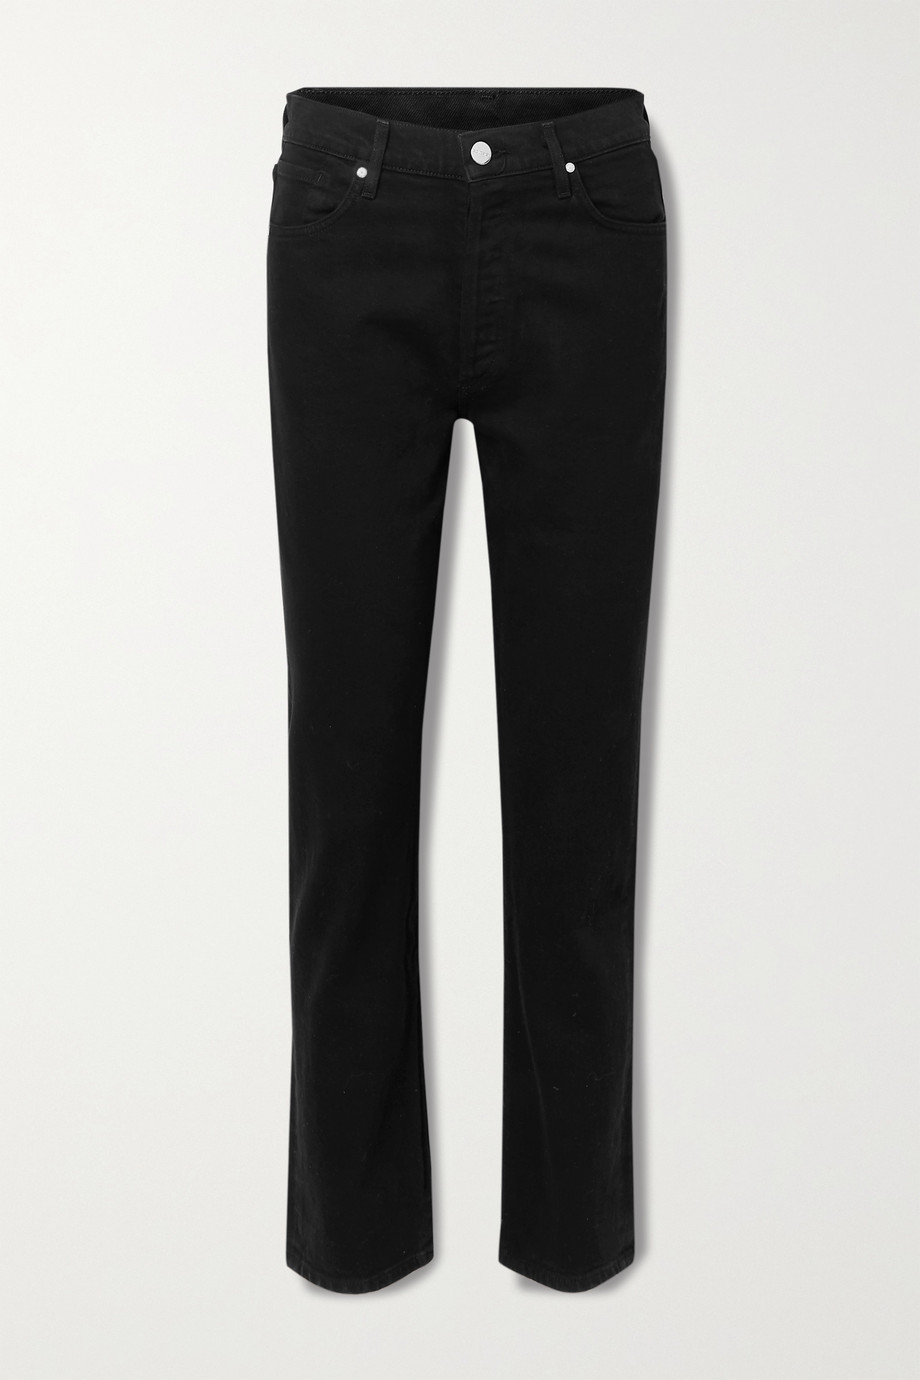 GOLDSIGN The Benefit high-rise straight-leg jeans